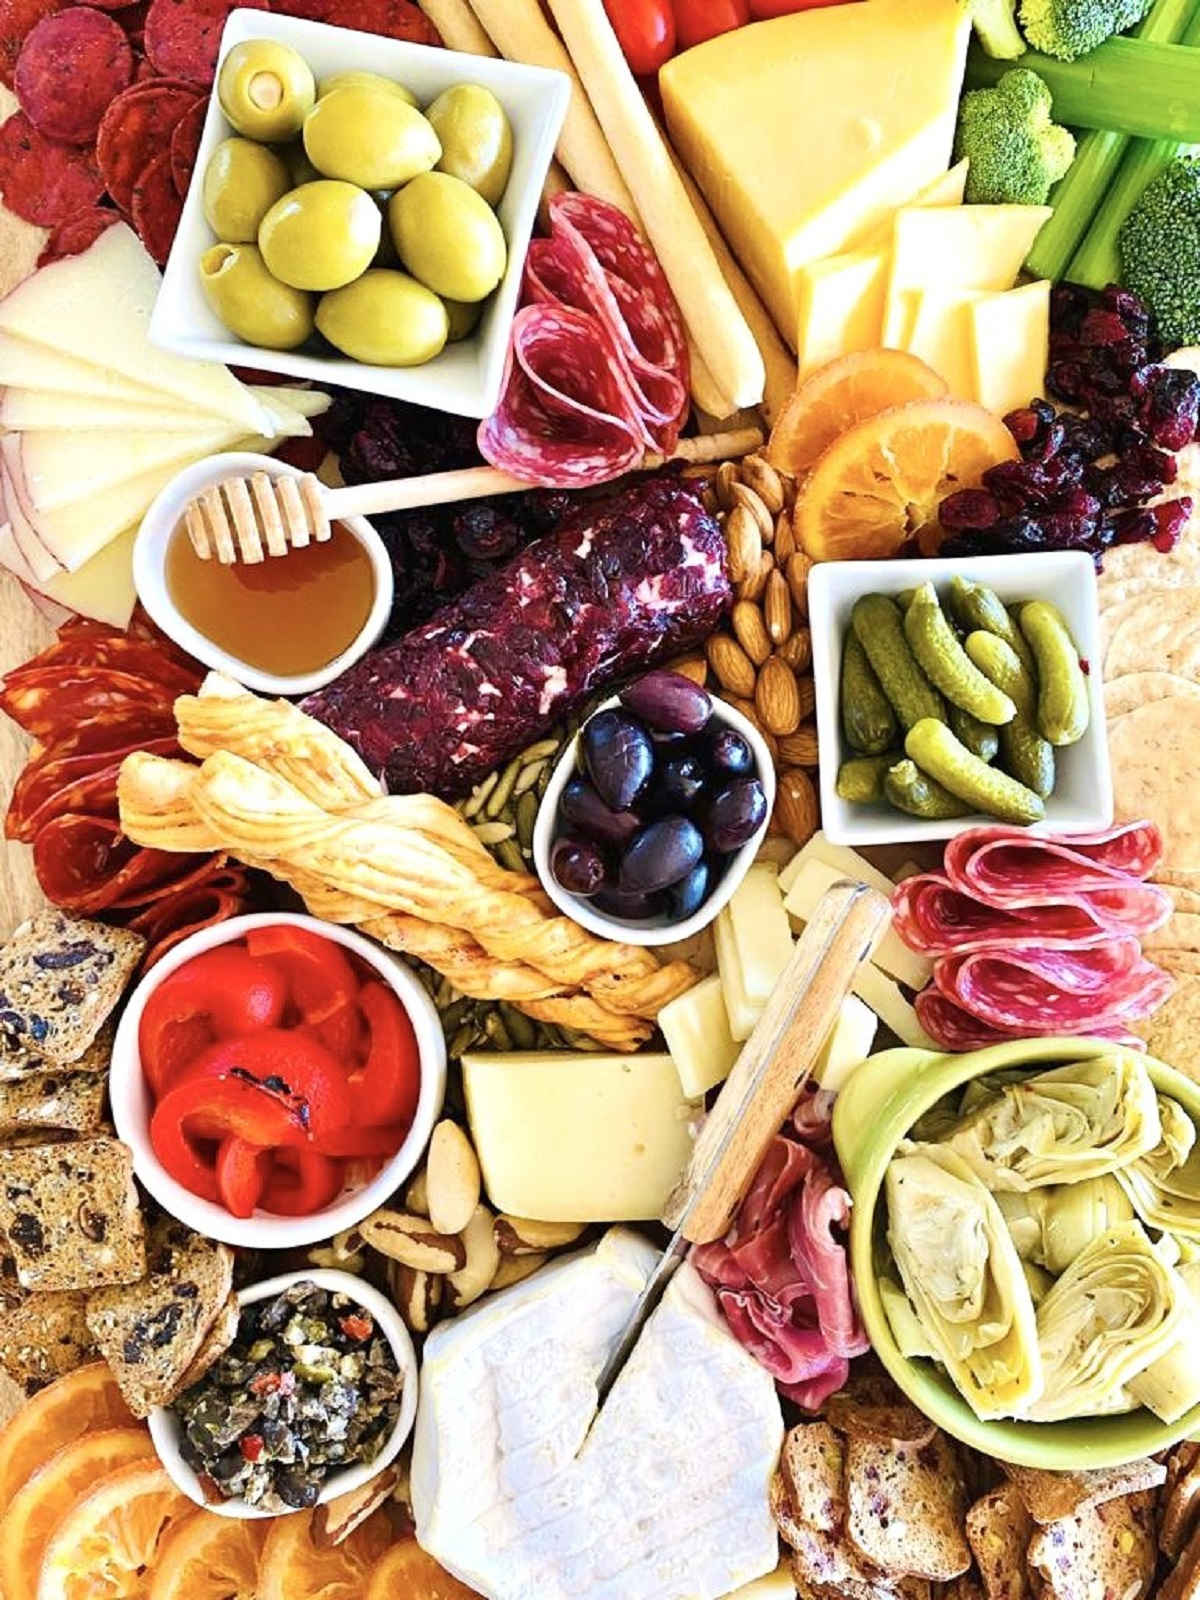 trader joe's charcuterie board with honey pickles red peppers vegetables nuts fruits cheese meat and dips and spreads